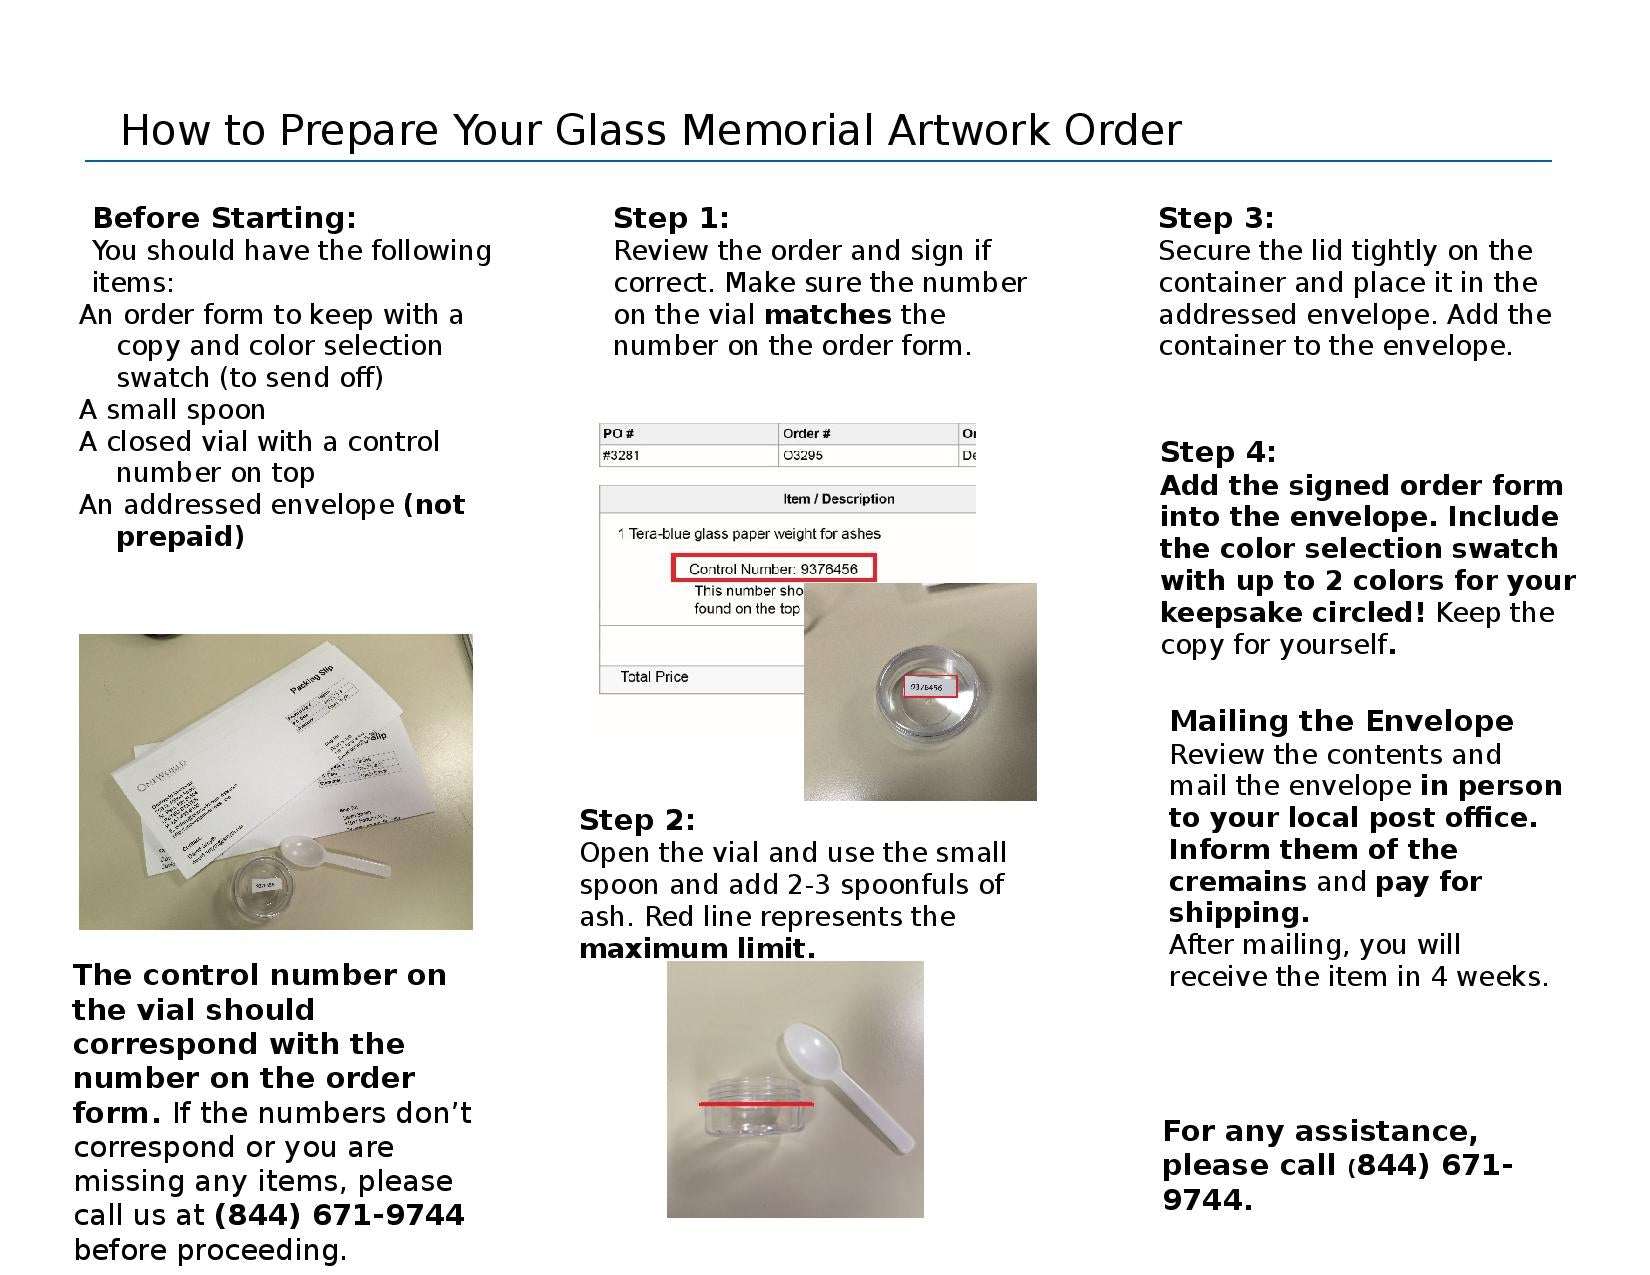 Page 2 of Glass Cremation Keepsake Instructions